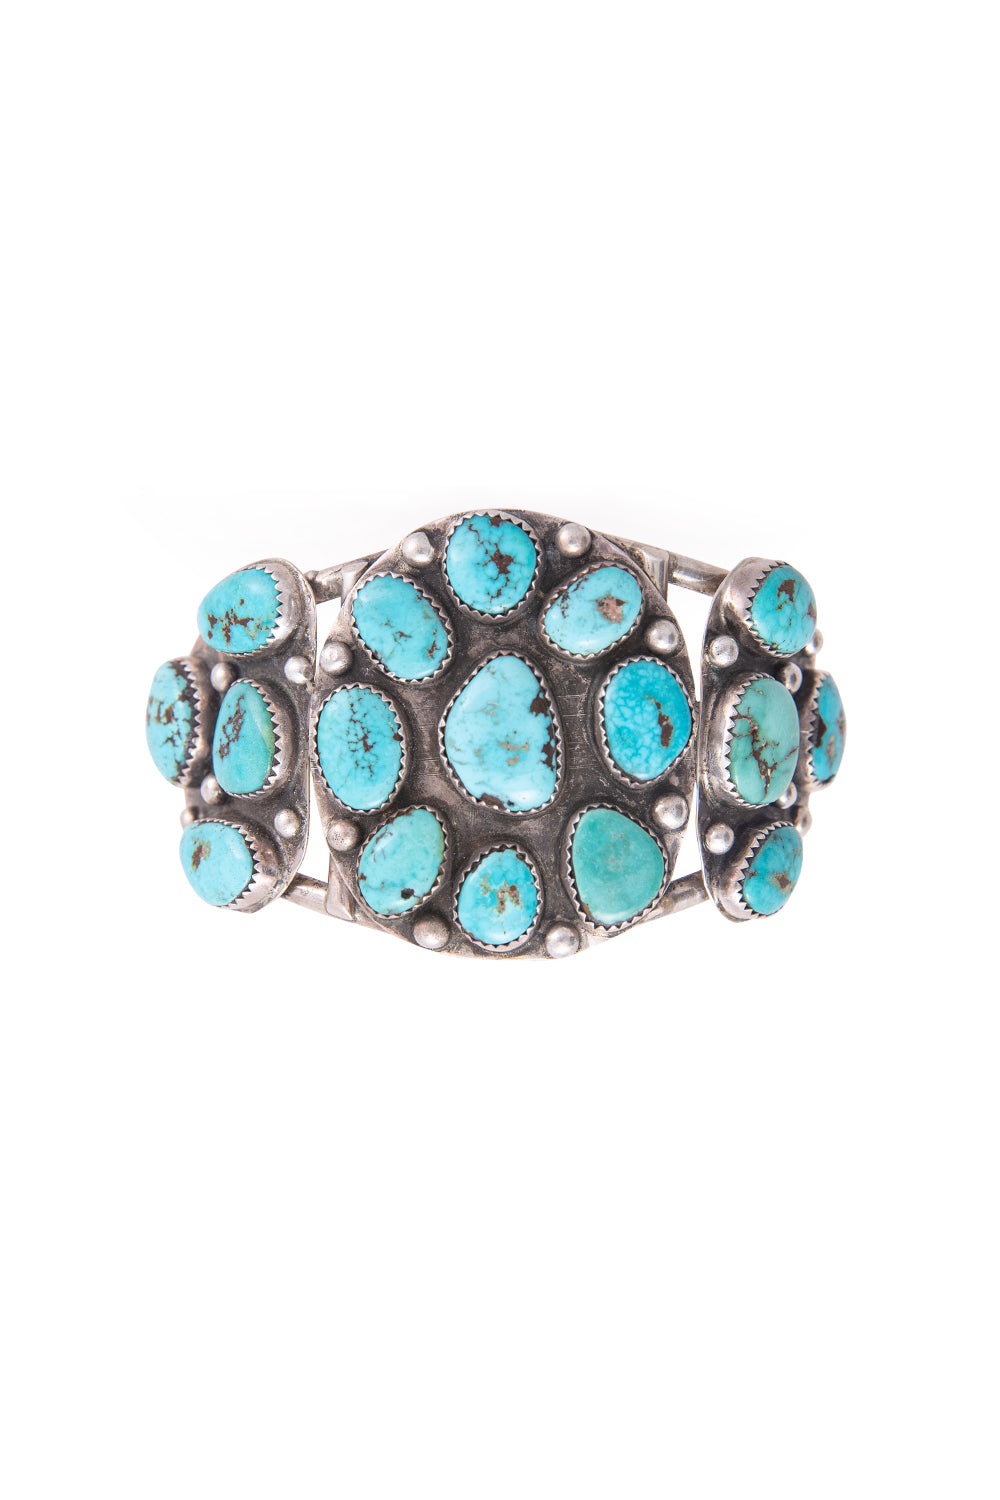 Cuff, Cluster, Turquoise, Vintage, 2502